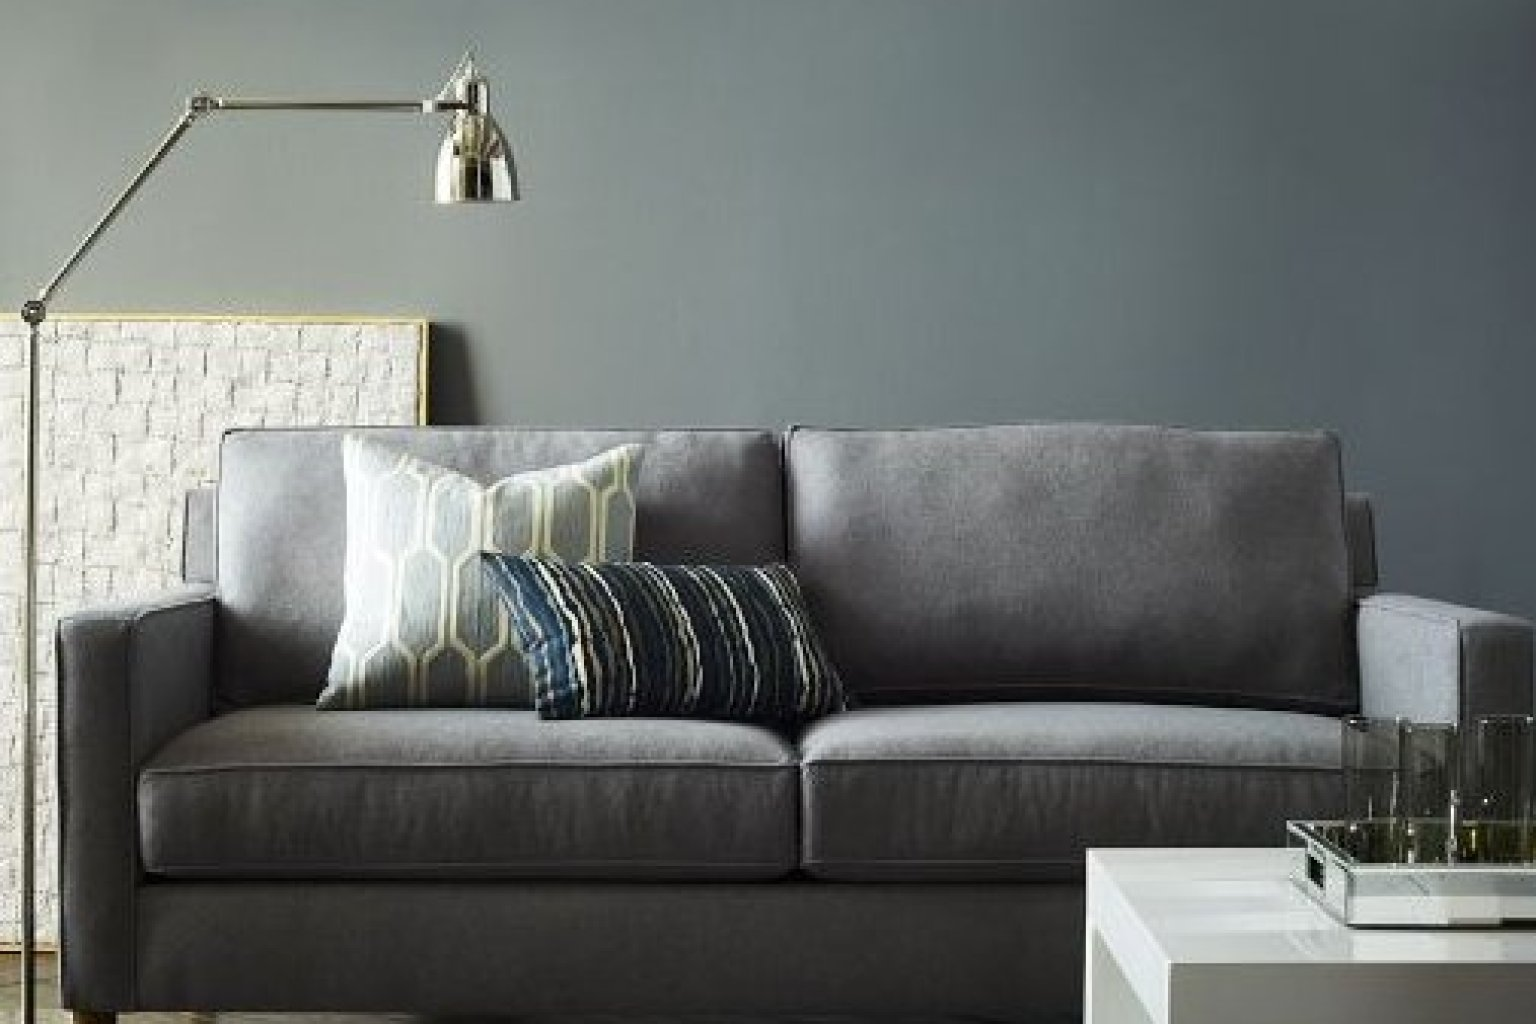 6 couches for small apartments that will actually fit in for Modern apartment furniture ideas